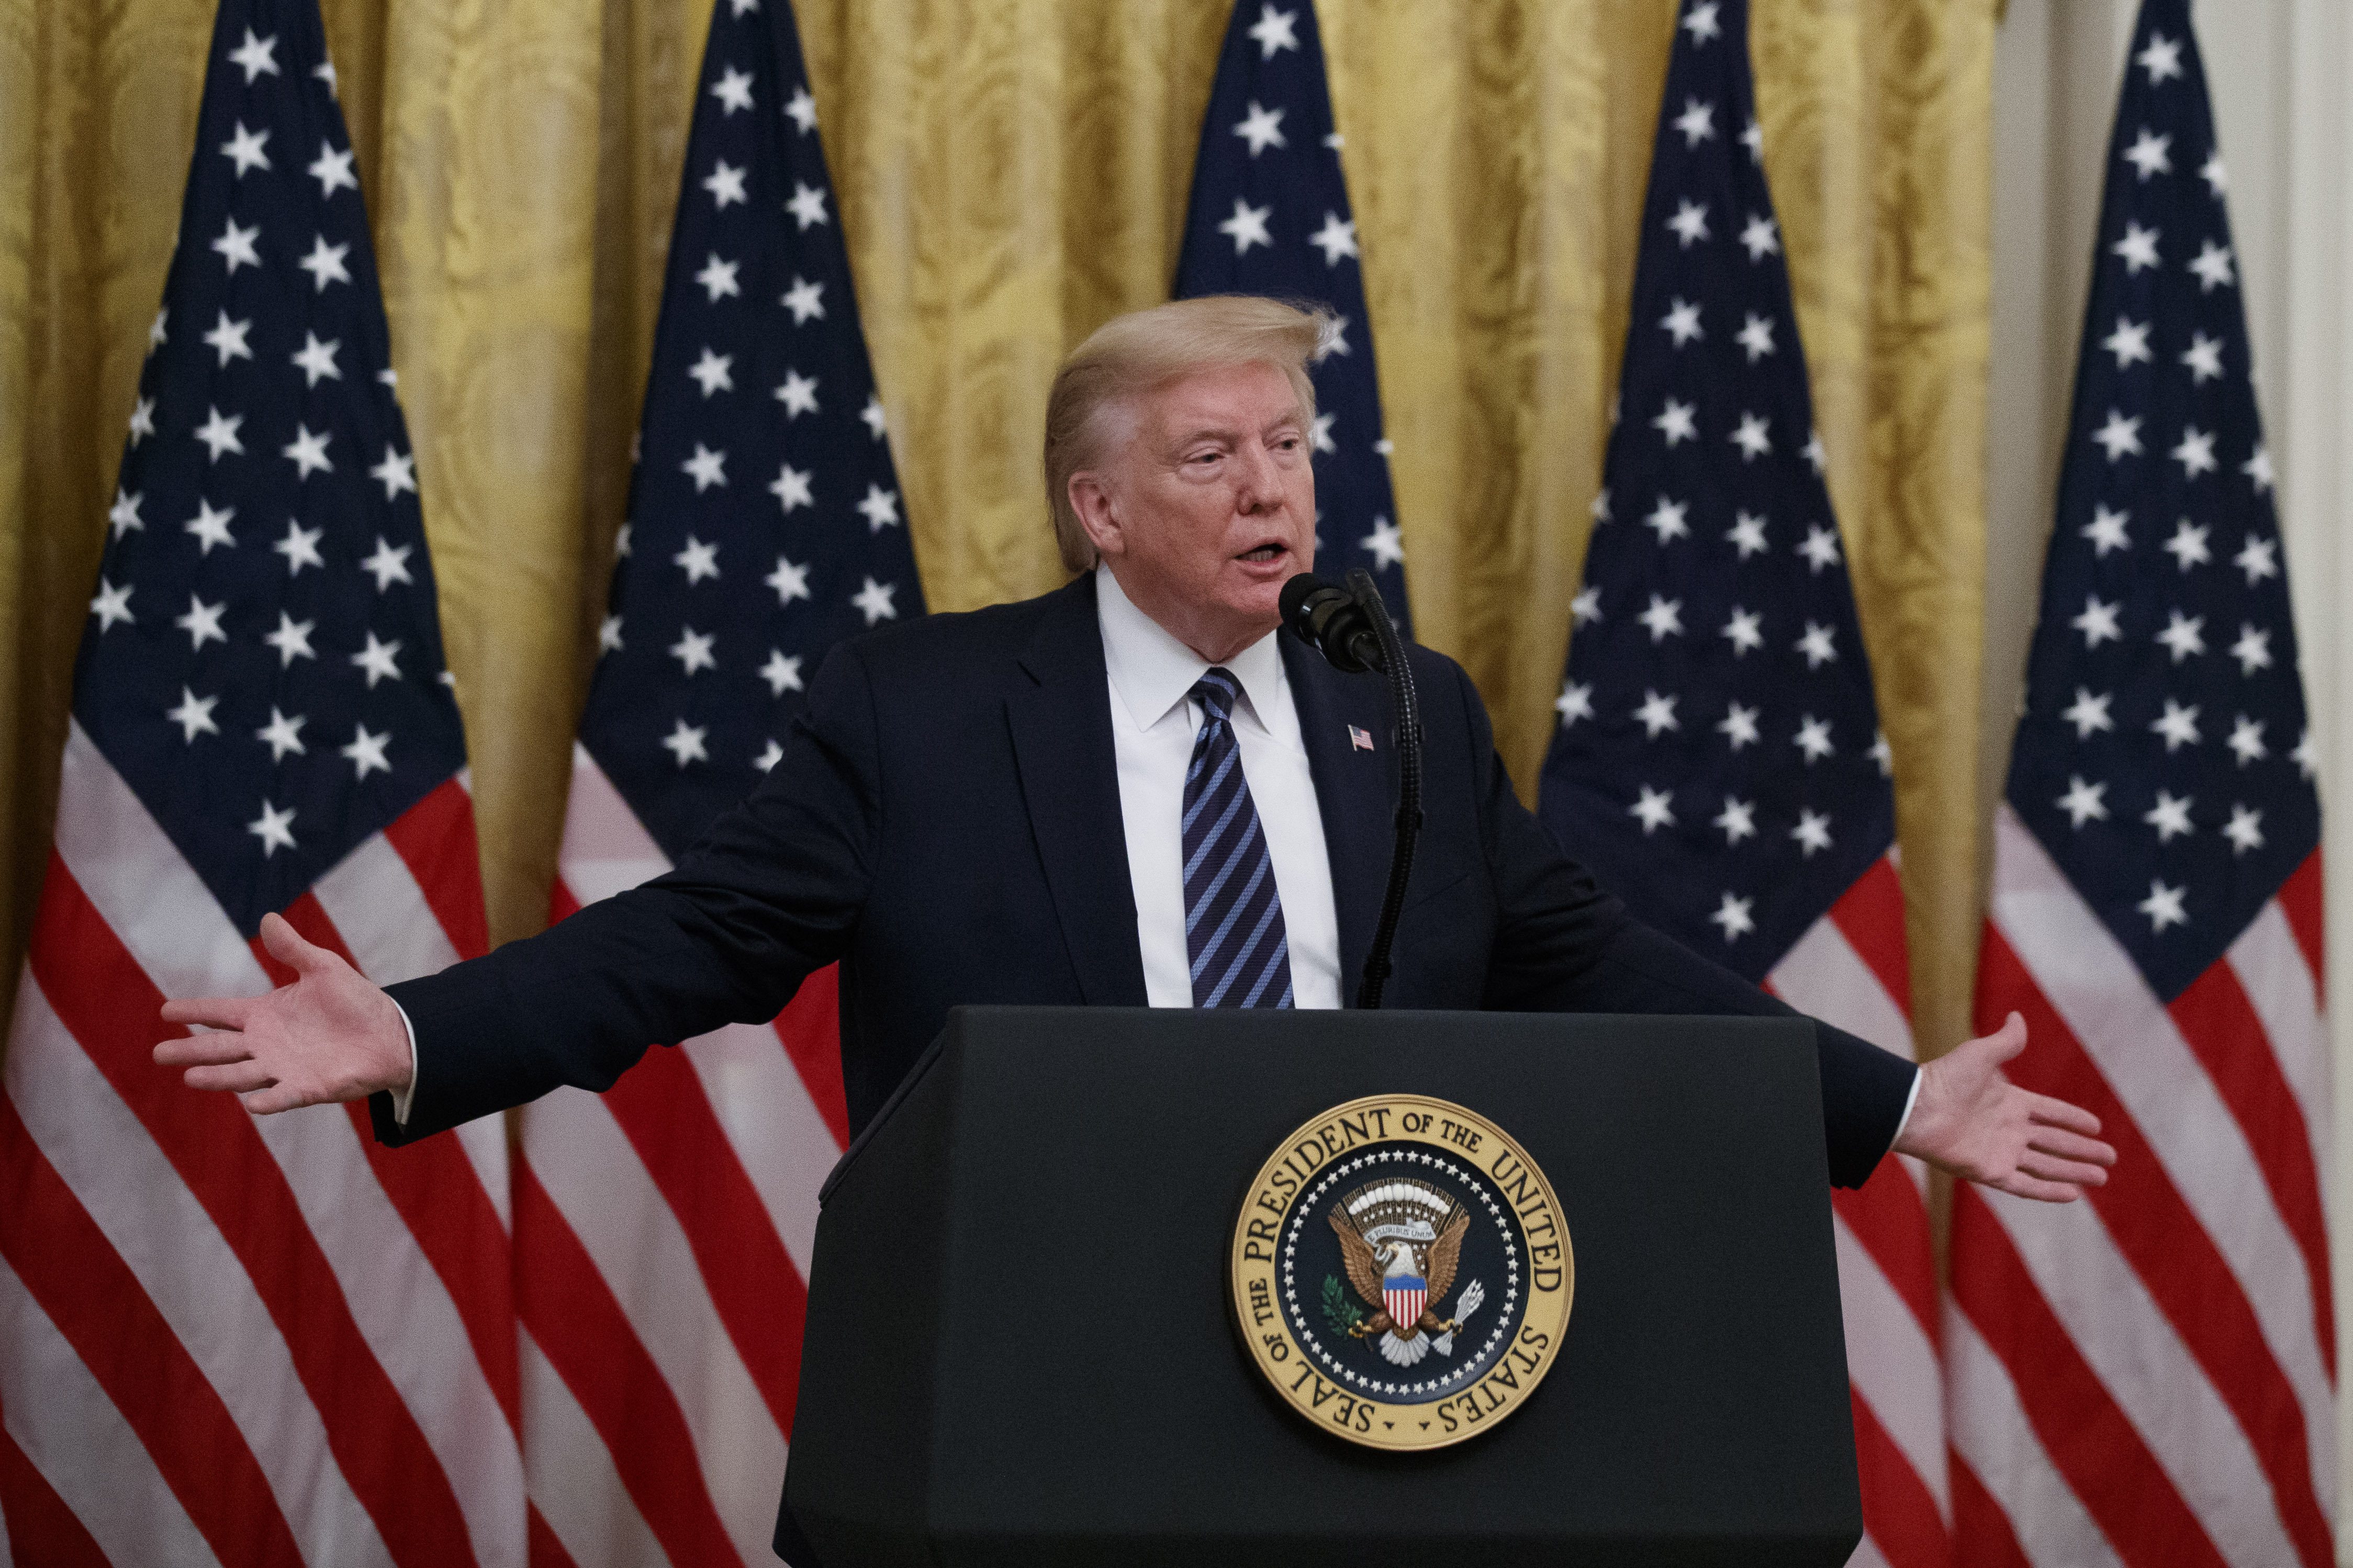 President Donald Trump speaks about protecting seniors, in the East Room of the White House, Thursday, April 30, 2020, in Washington. (AP Photo/Alex Brandon)